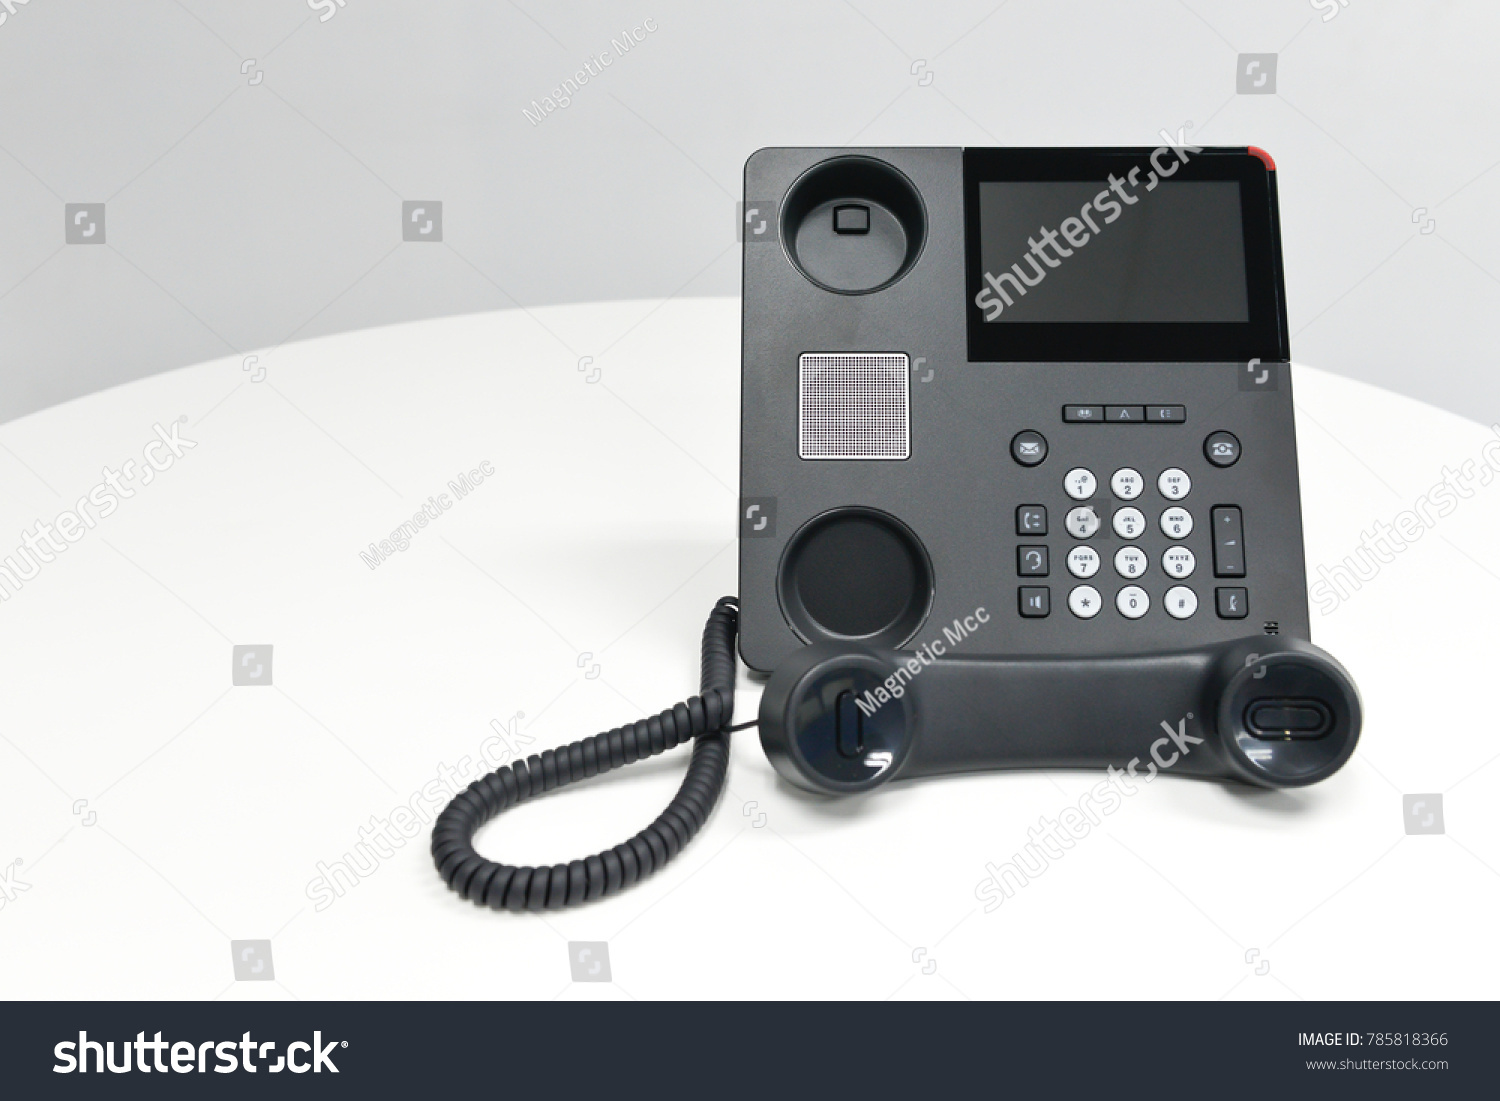 Black Ip Phone Office Phone On The White Table In The Meeting Room